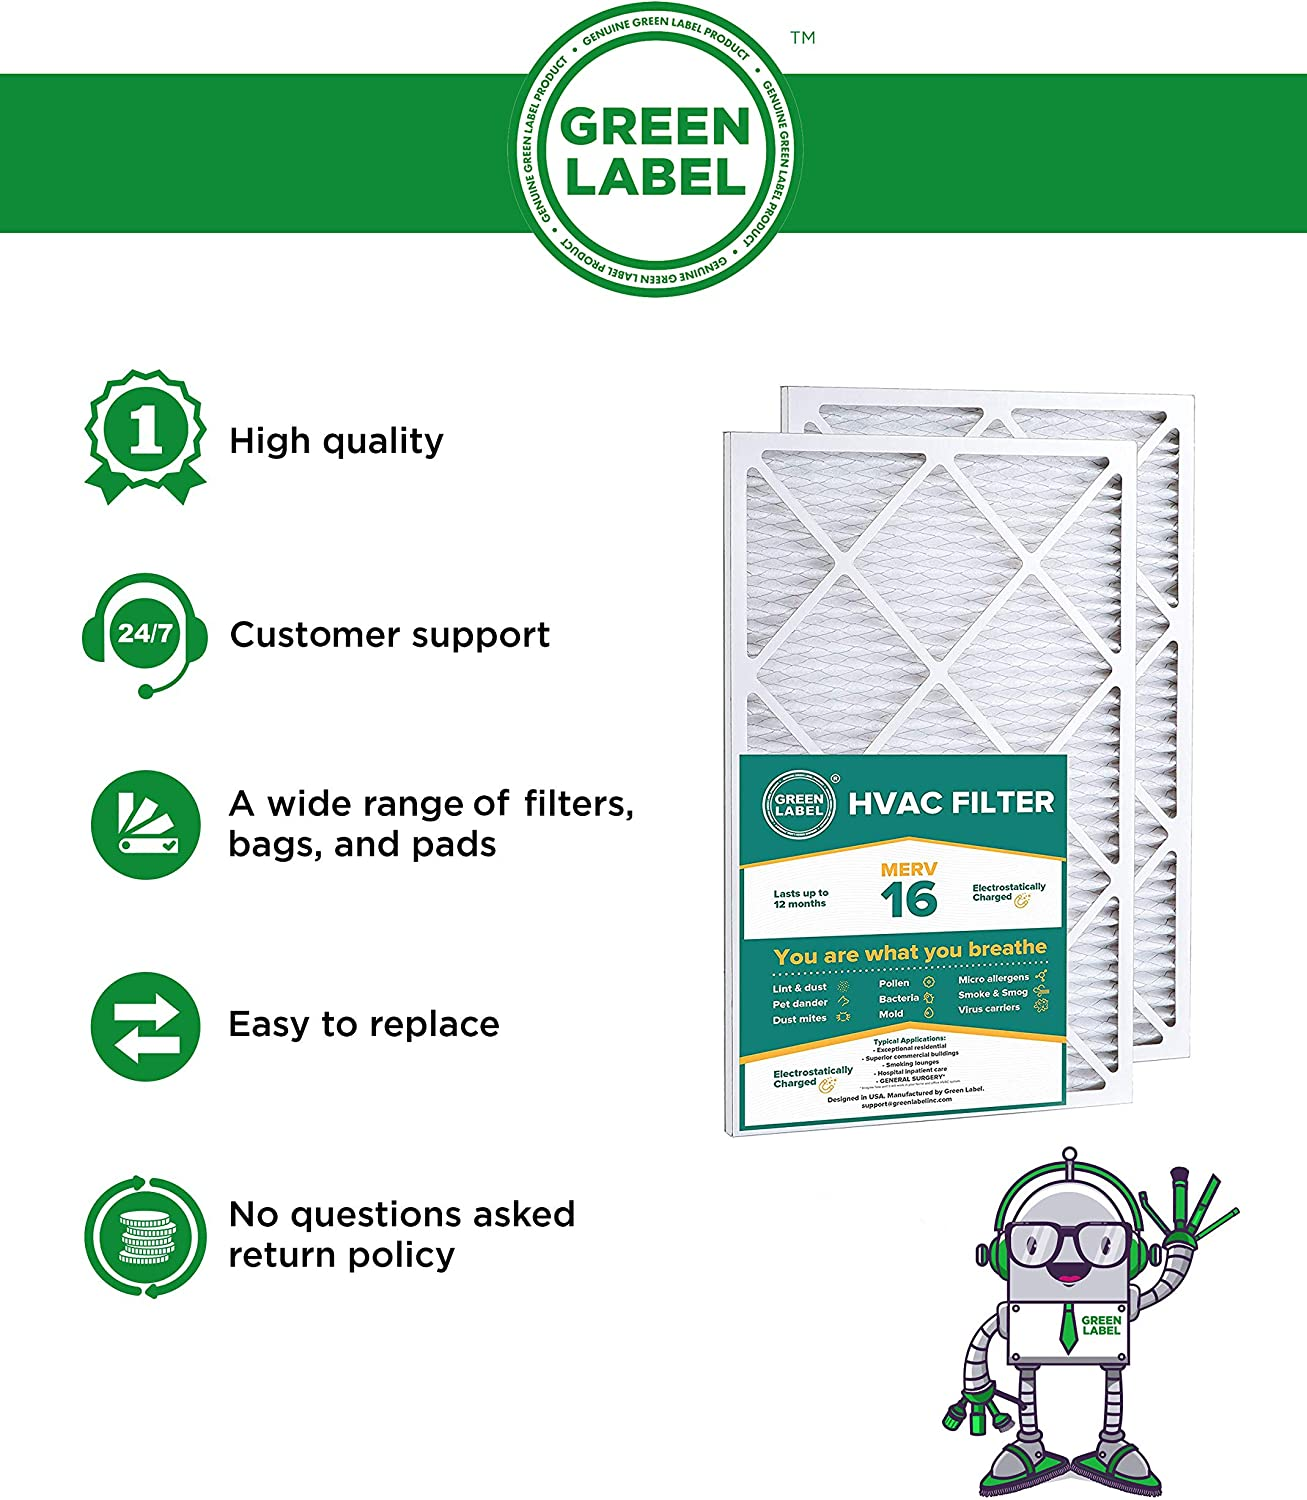 AC Furnace Air Ultra Cleaning Filter MERV 16 Pack of 2 Green Label HVAC Air Filter 16x25x1